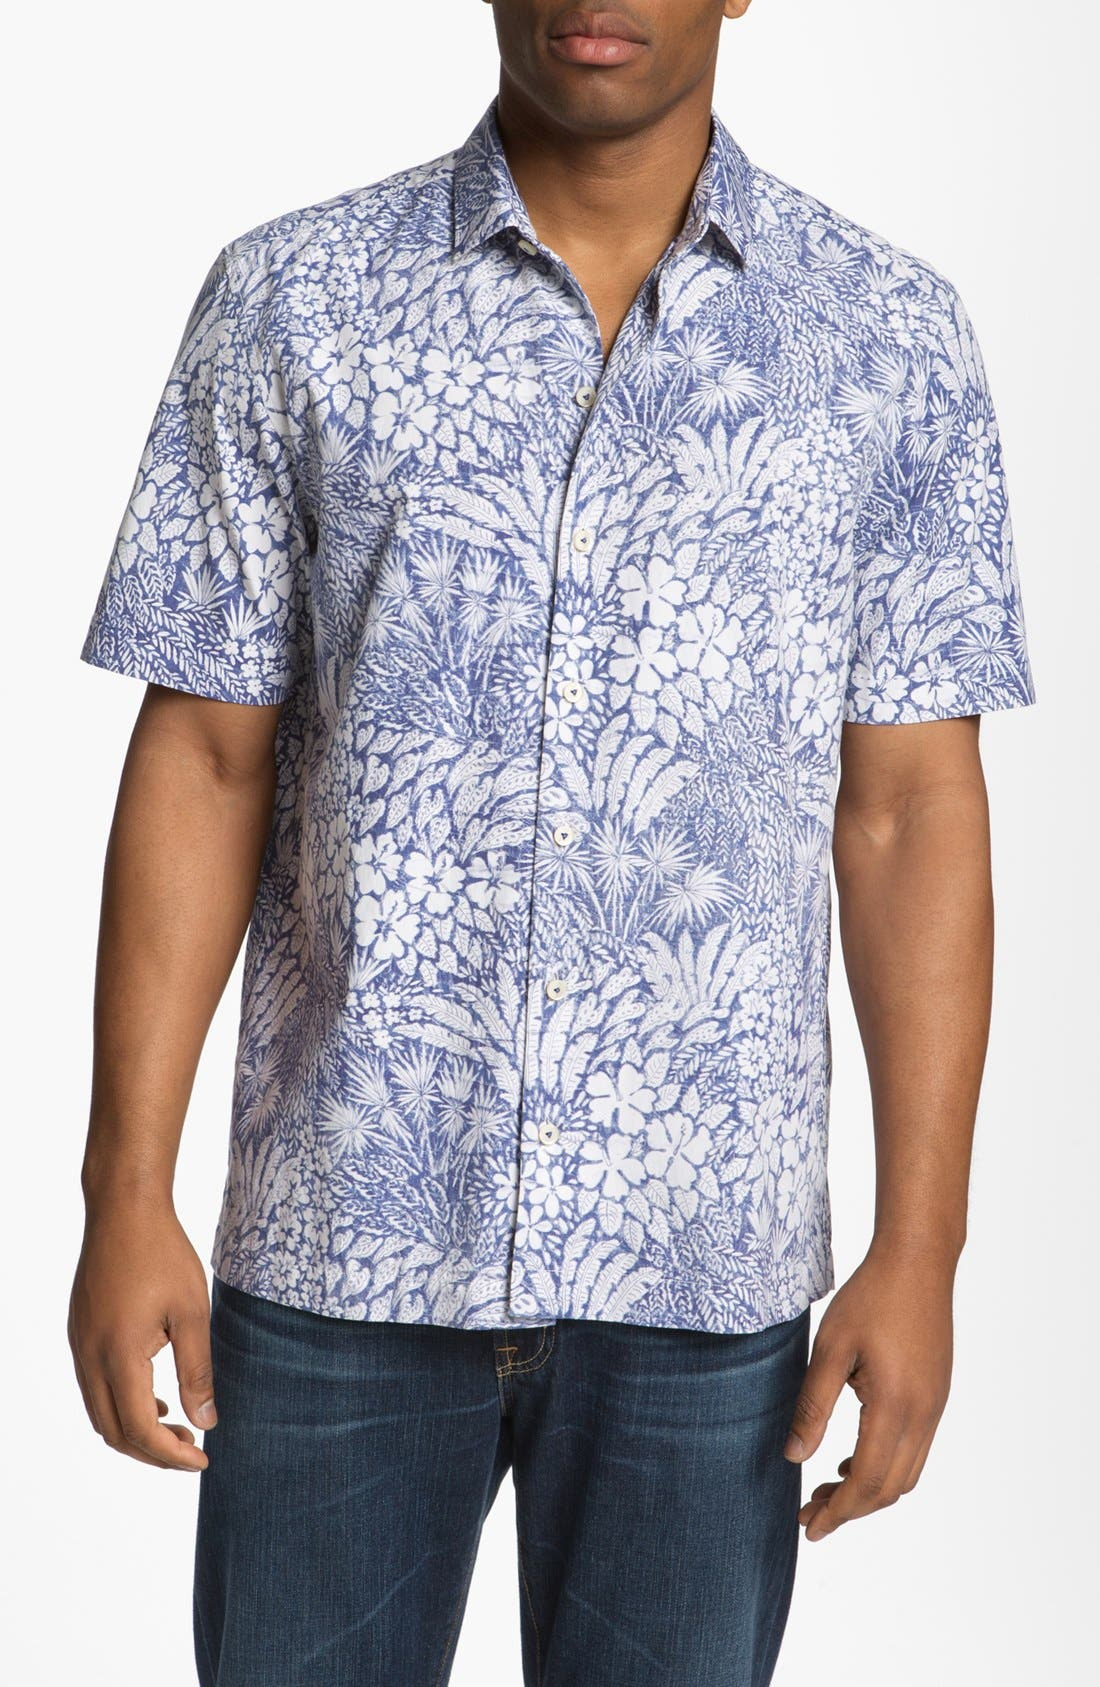 Main Image - Tommy Bahama 'Grove Is in the Heart' Silk Blend Campshirt